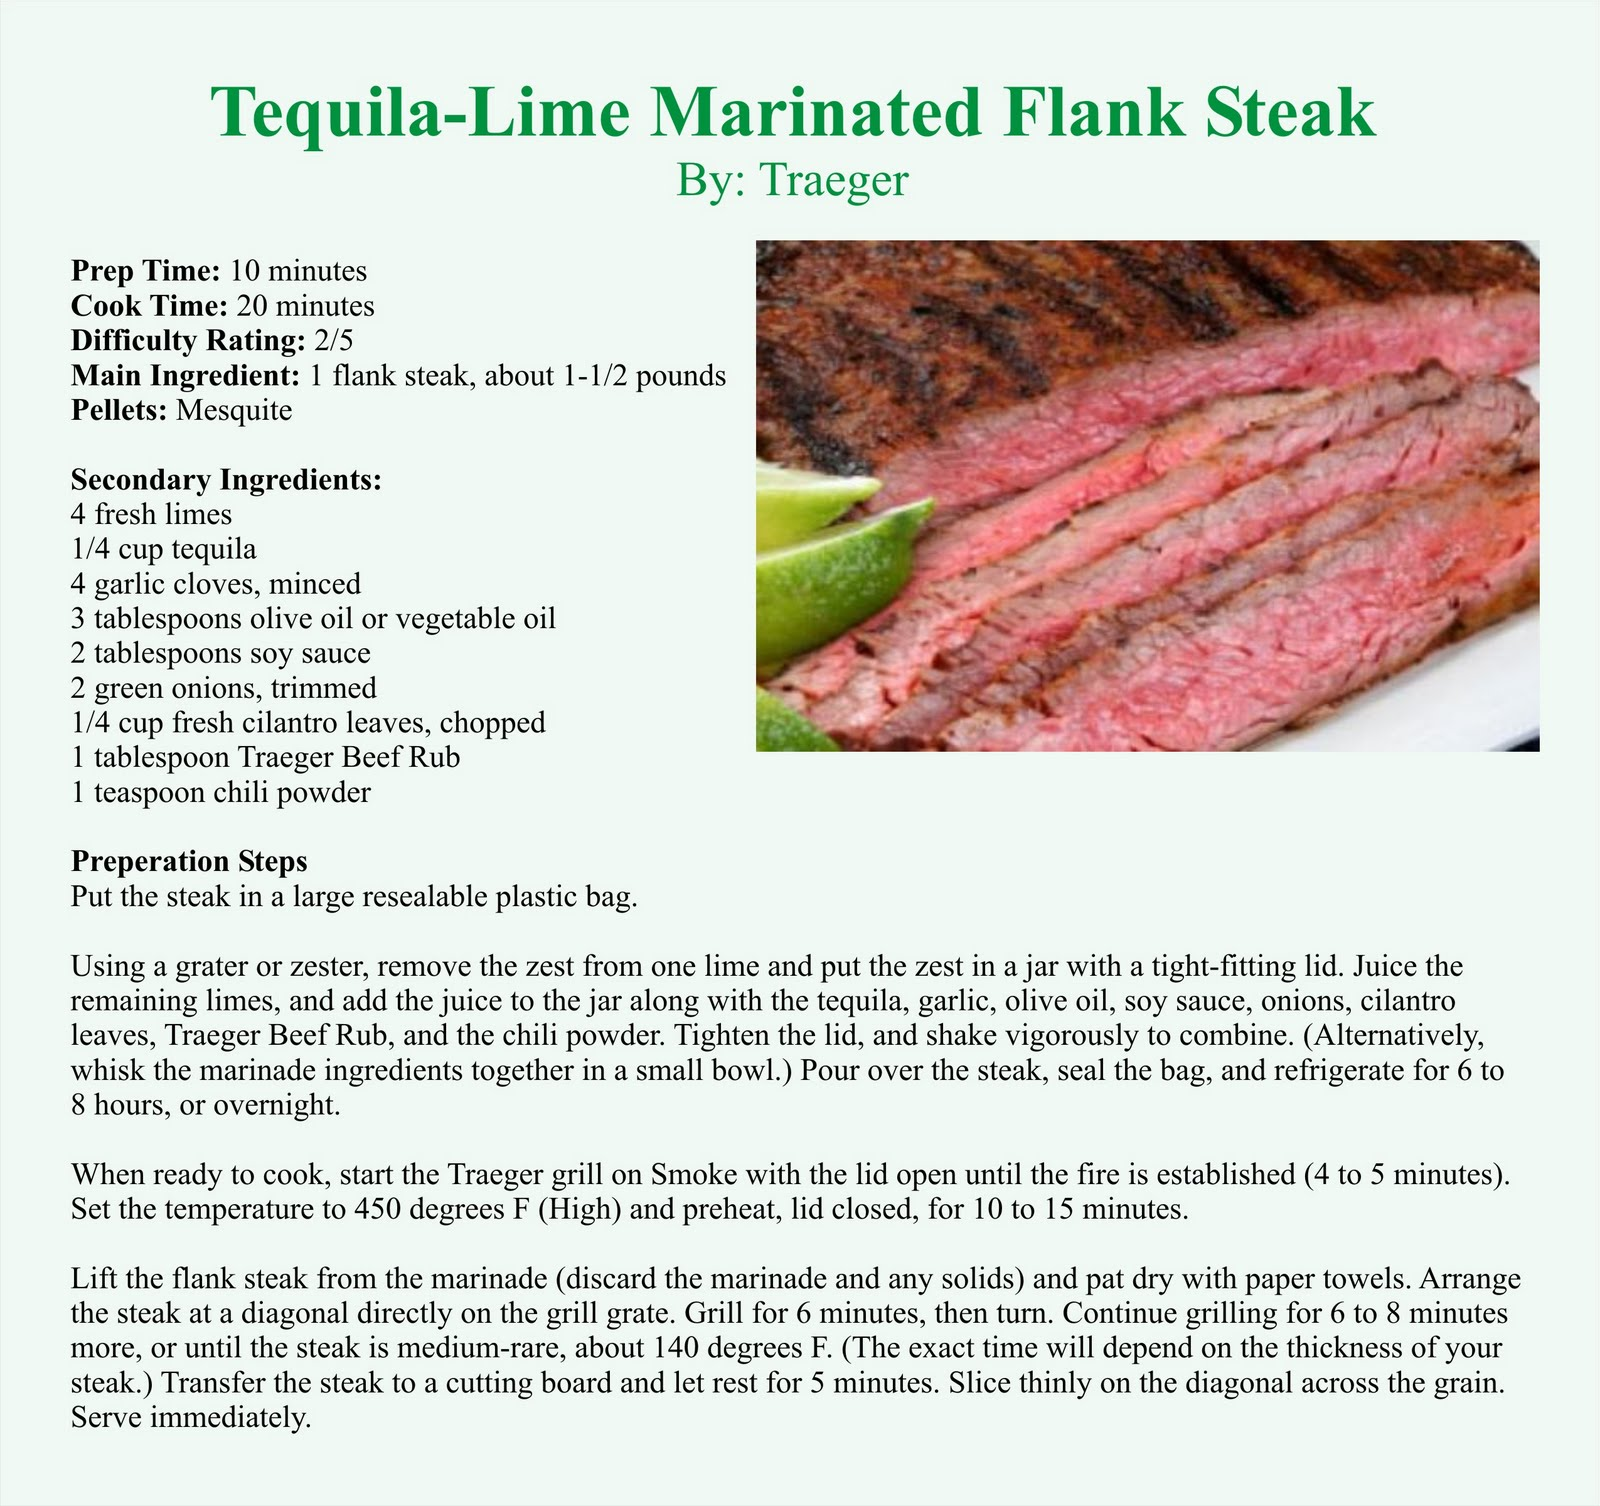 Tequila-Lime Marinated Flank Steak